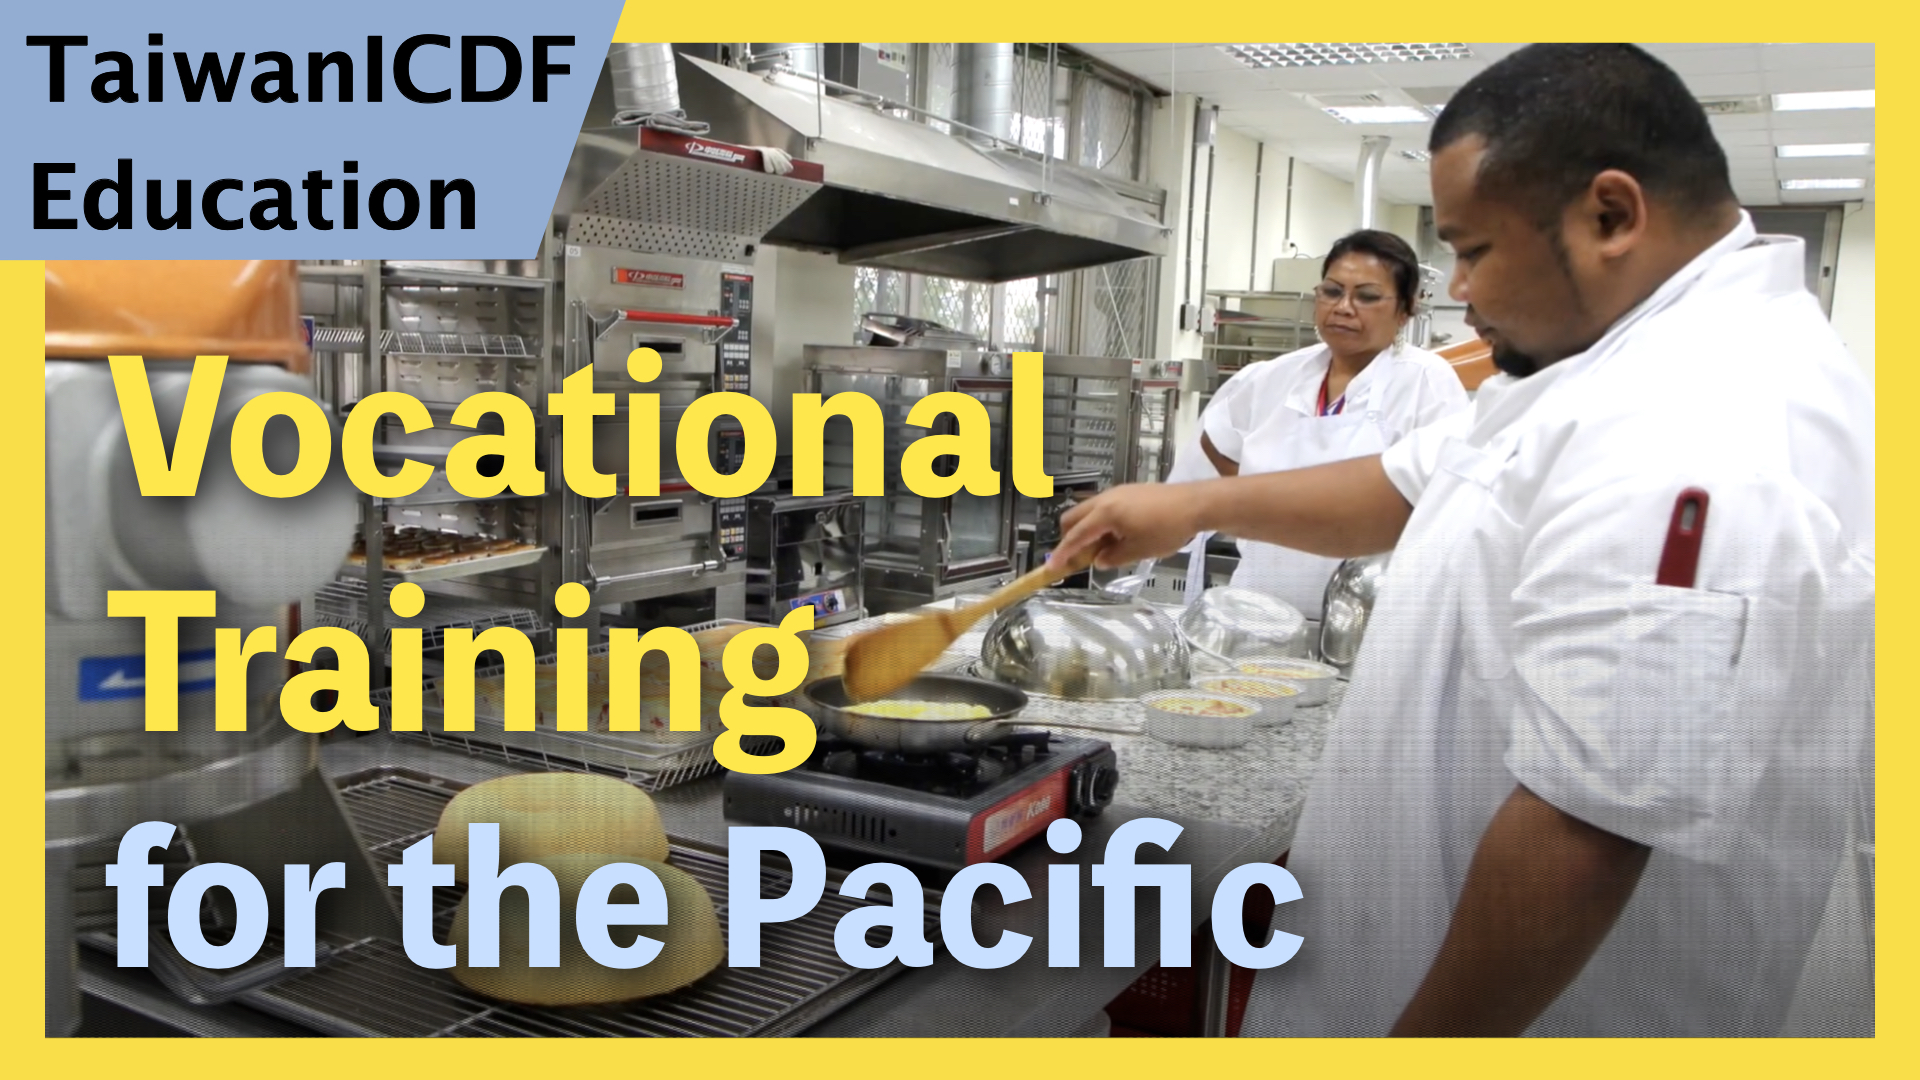 Vocational Training Project for the Pacific